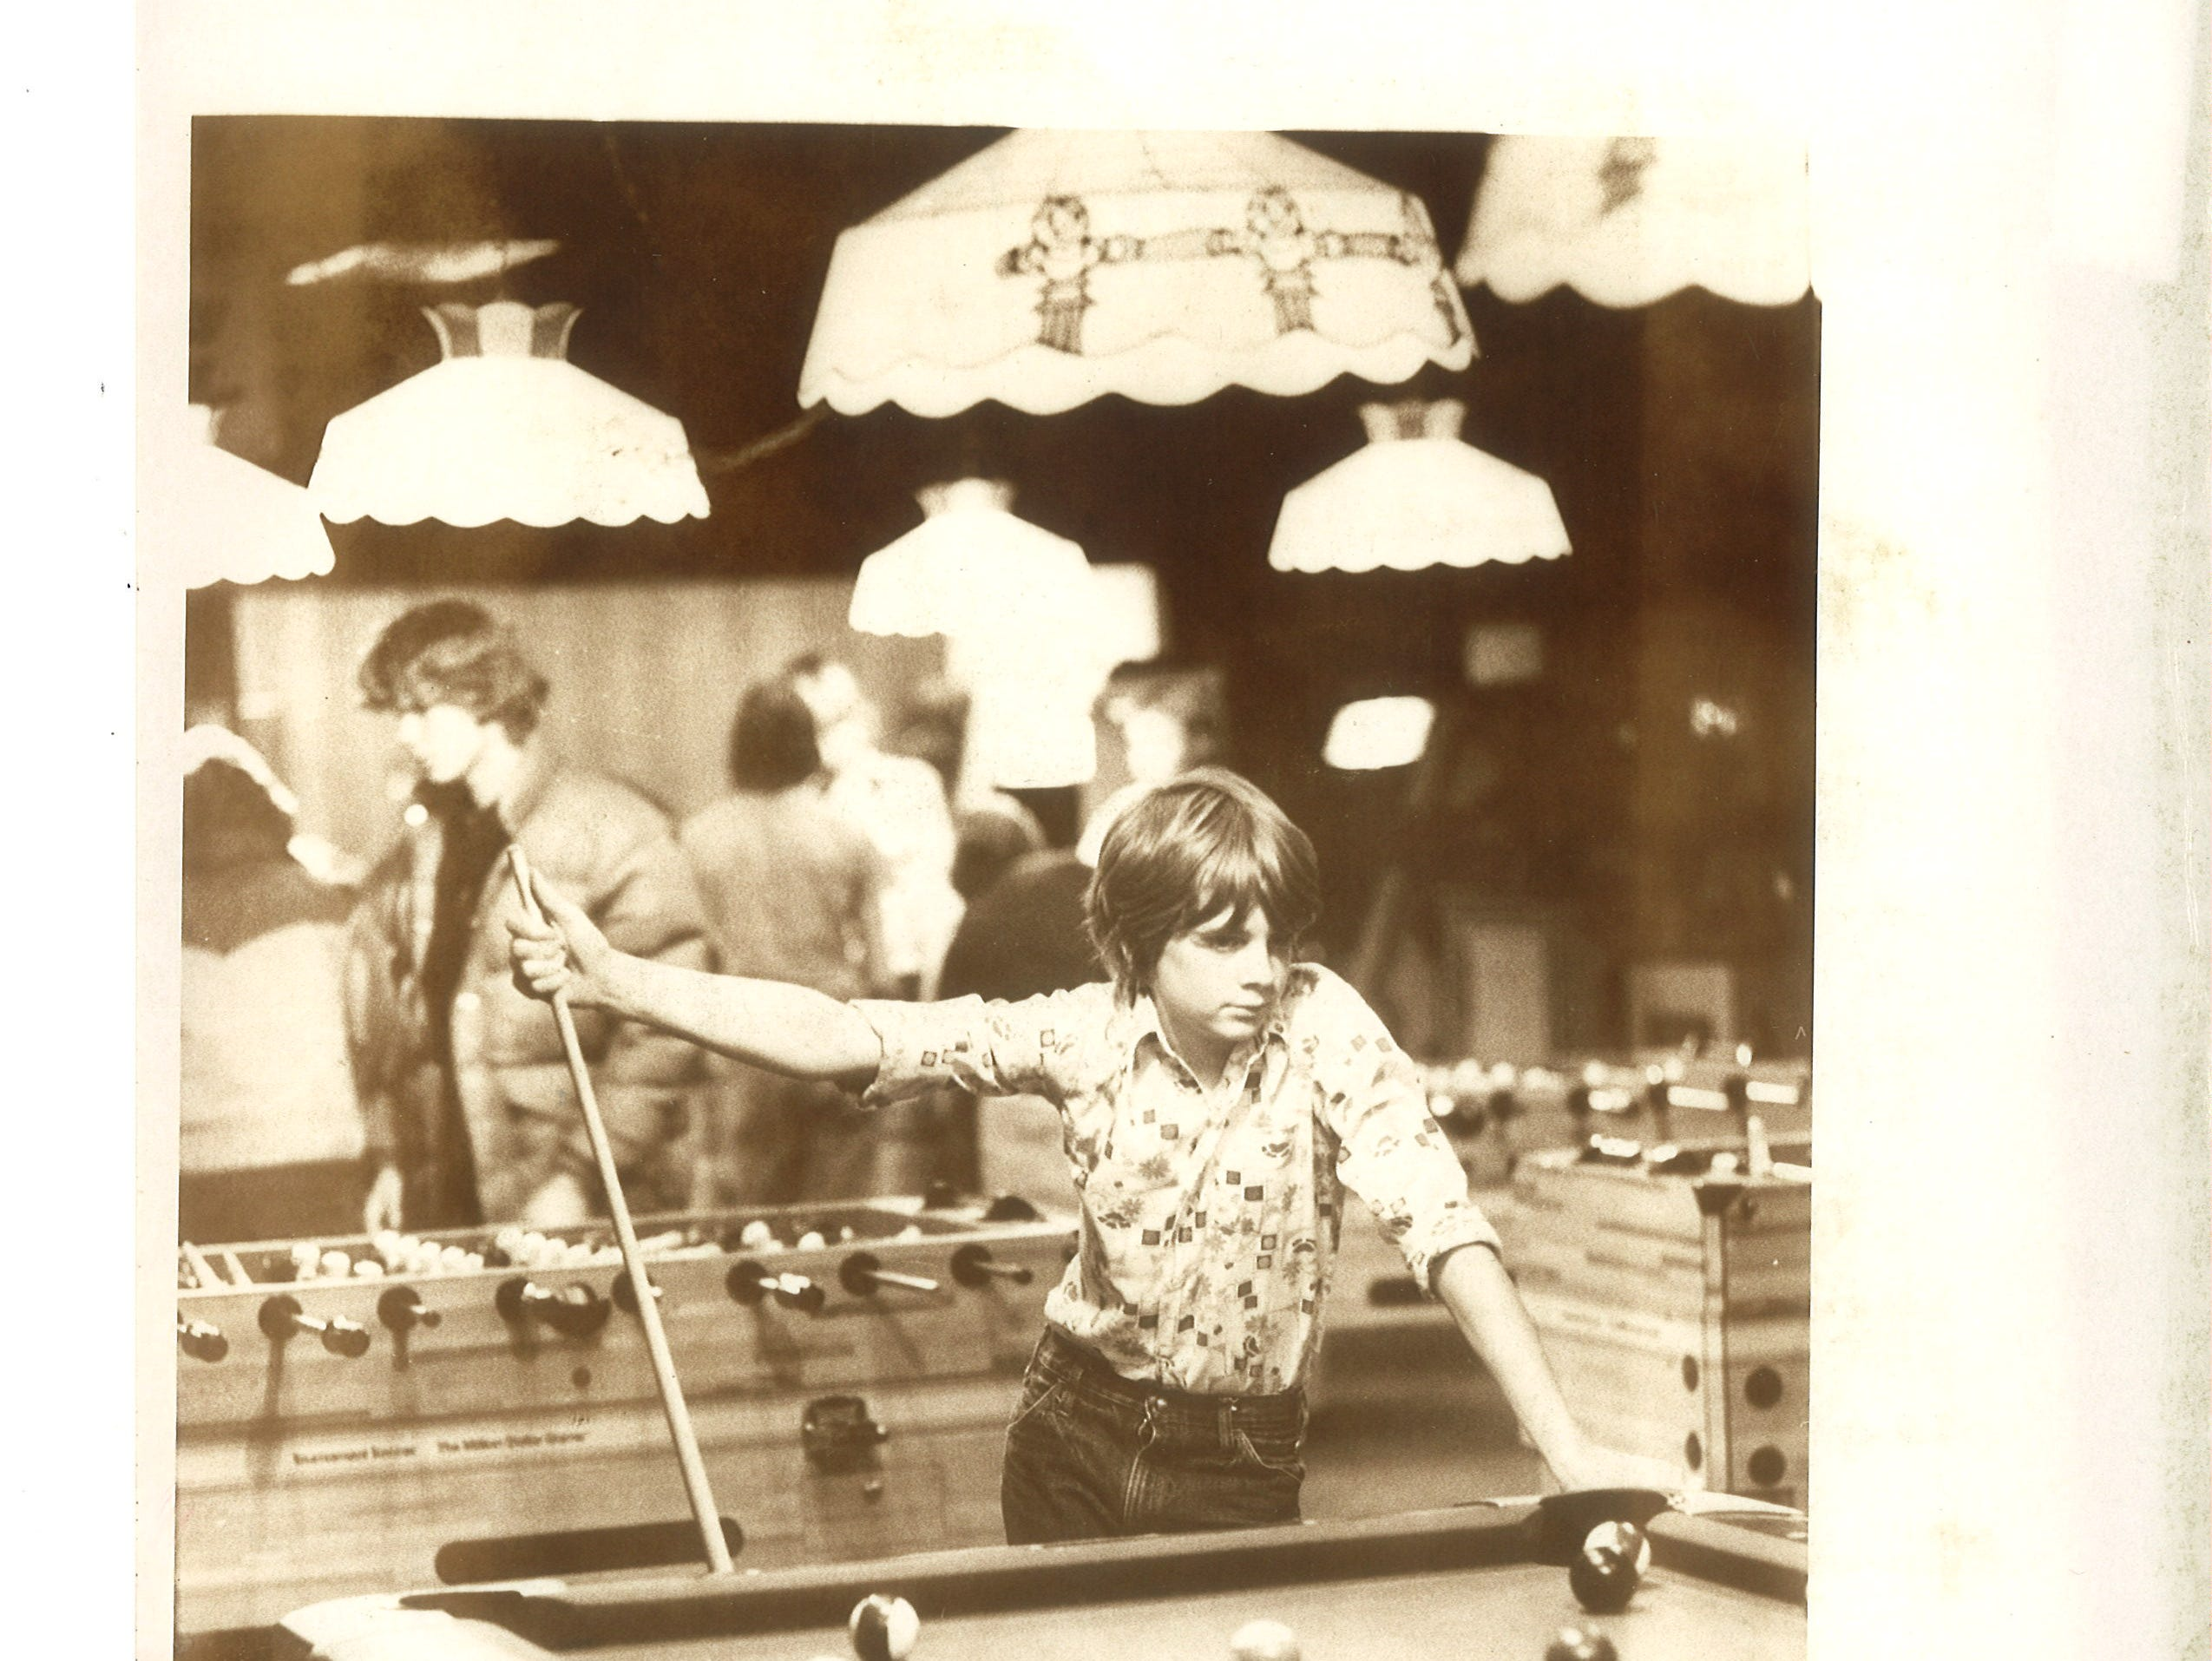 Life in Great Falls 40 years ago: A young billiards player surveys his options